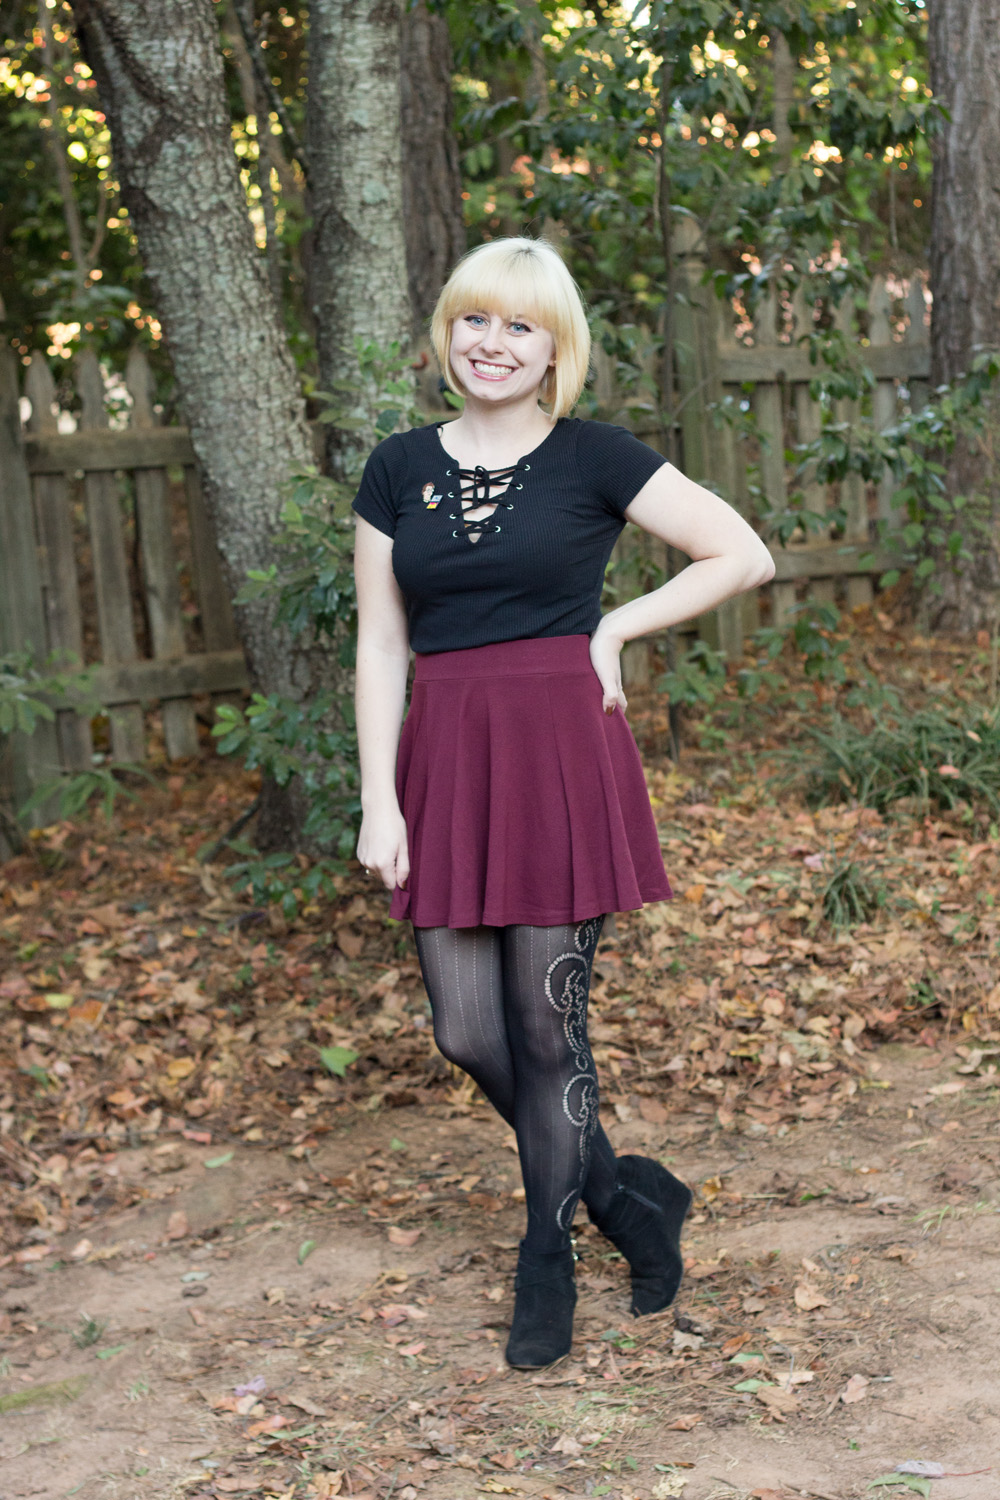 Patterned Tights Maroon Skater Skirt Lace Up Shirt Novelty Pins